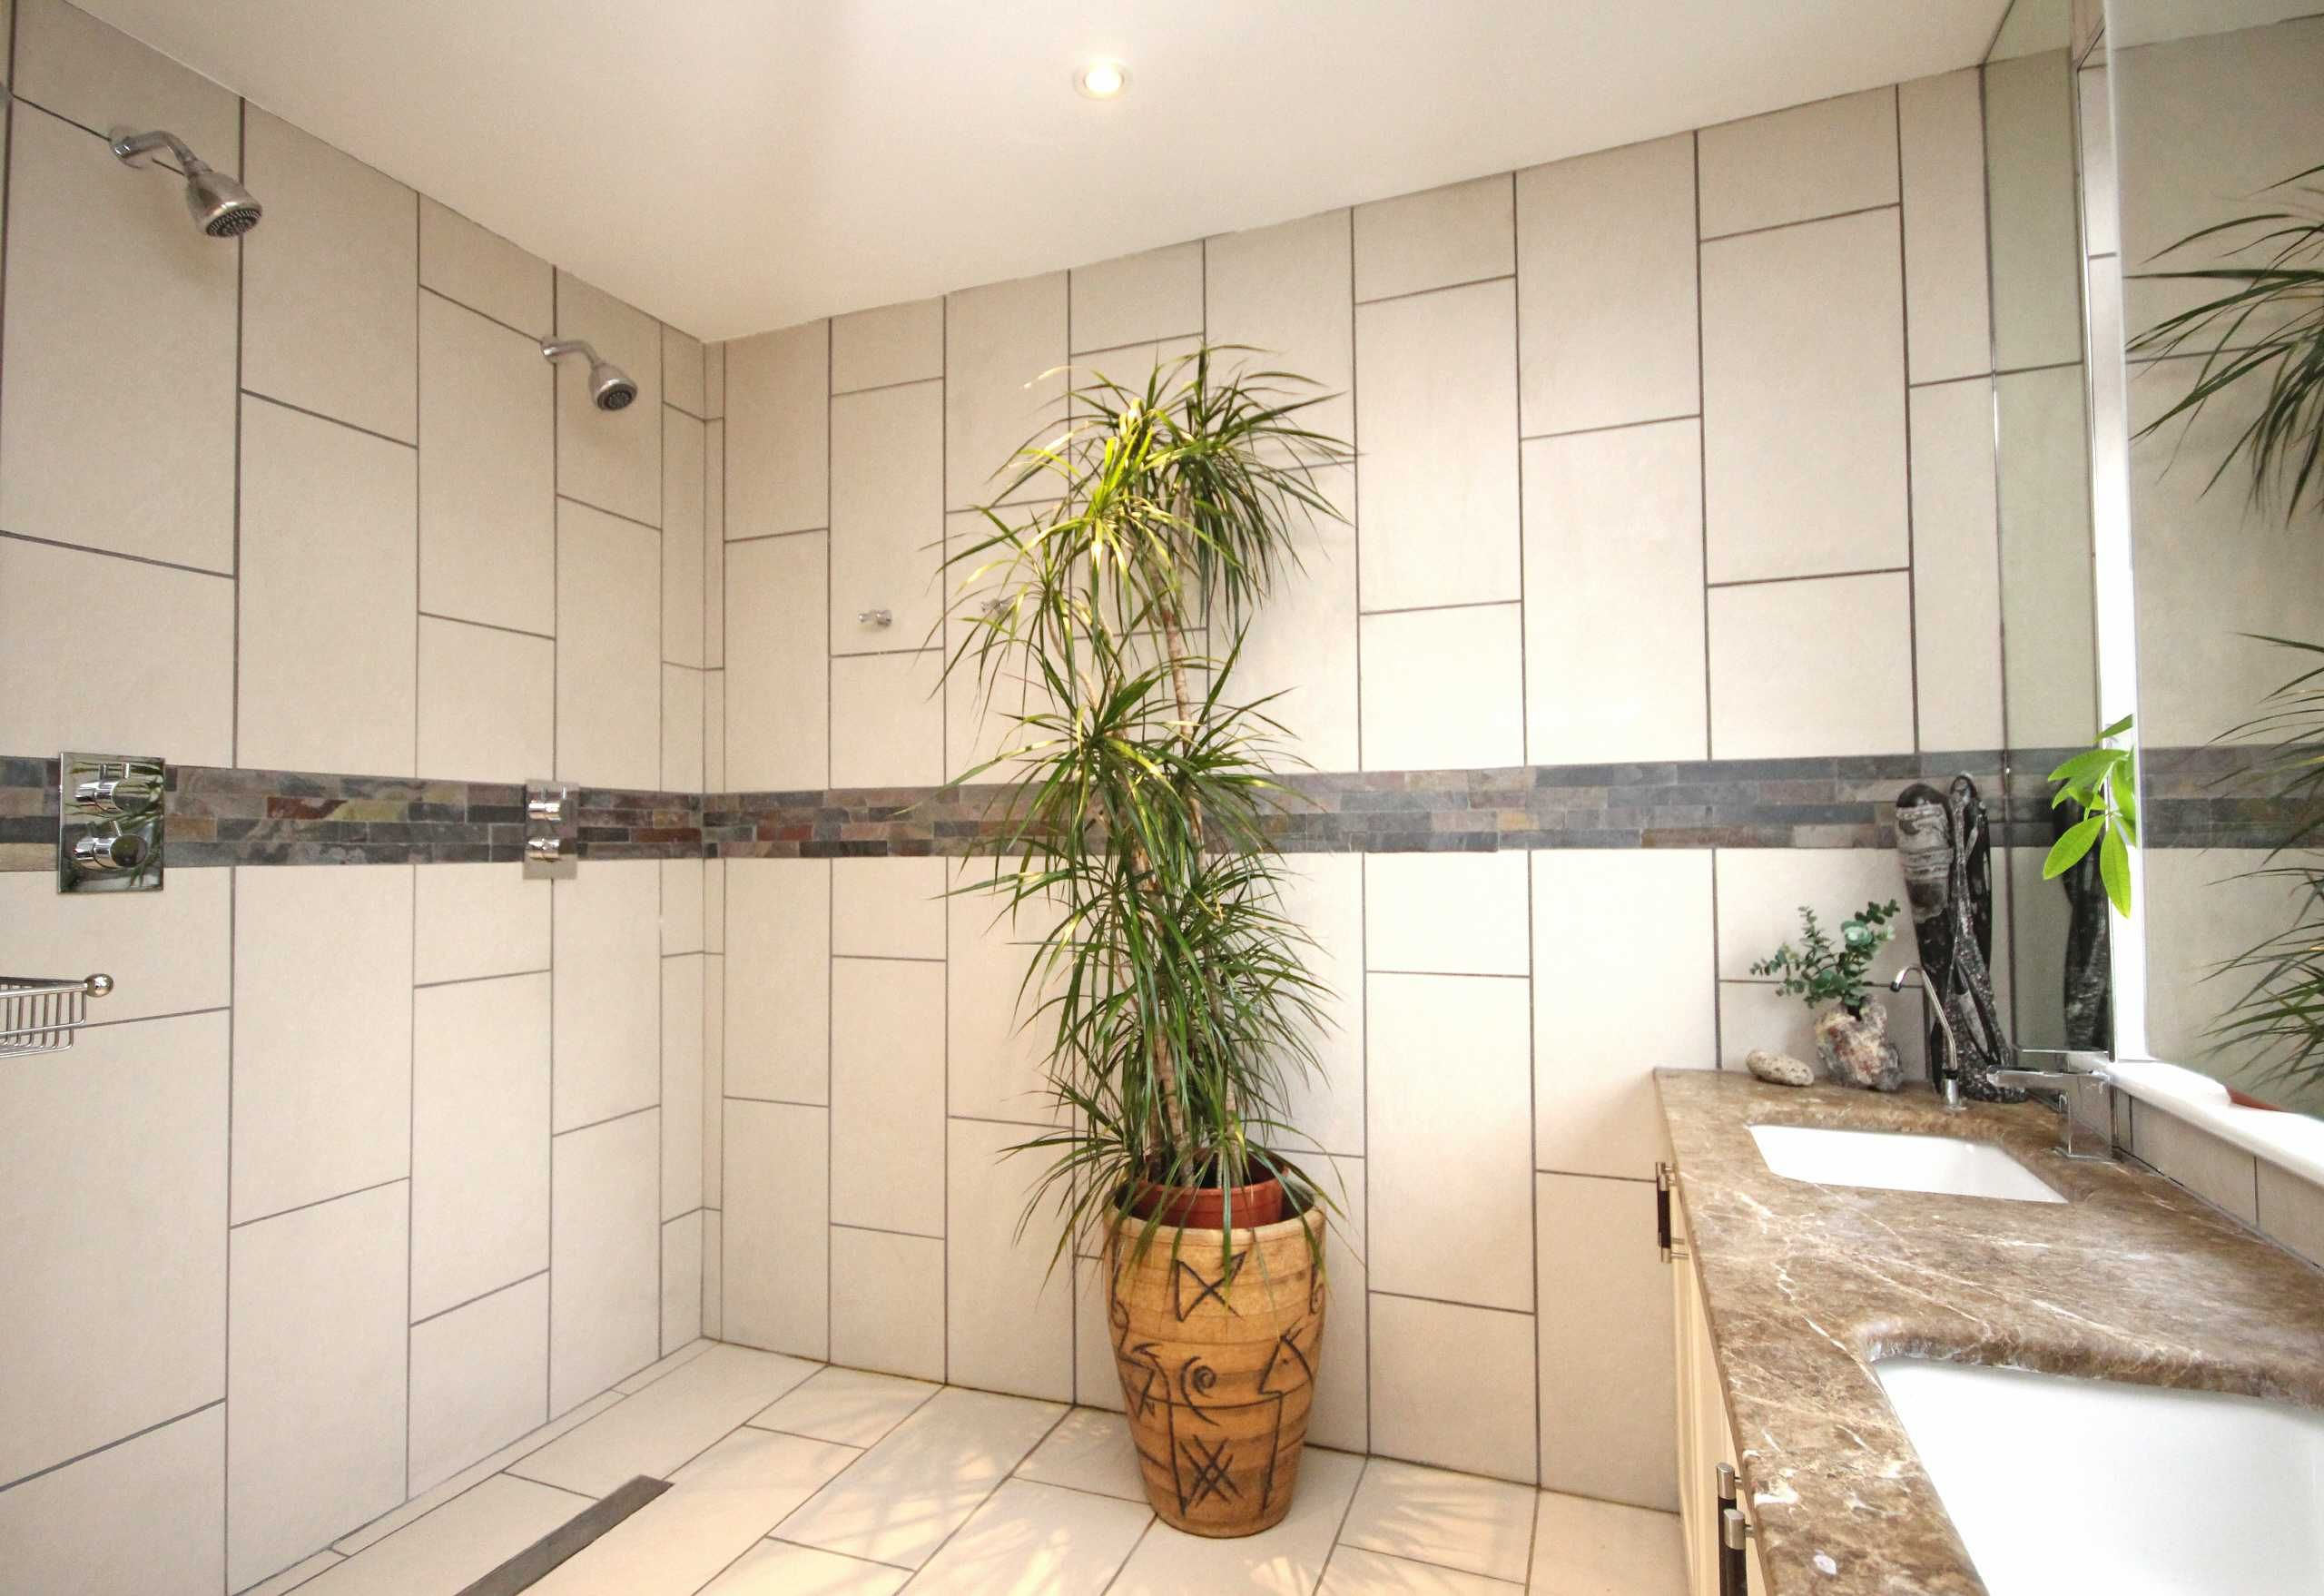 2 Showers, 2 Sinks, Wet Room Wet rooms, Small space